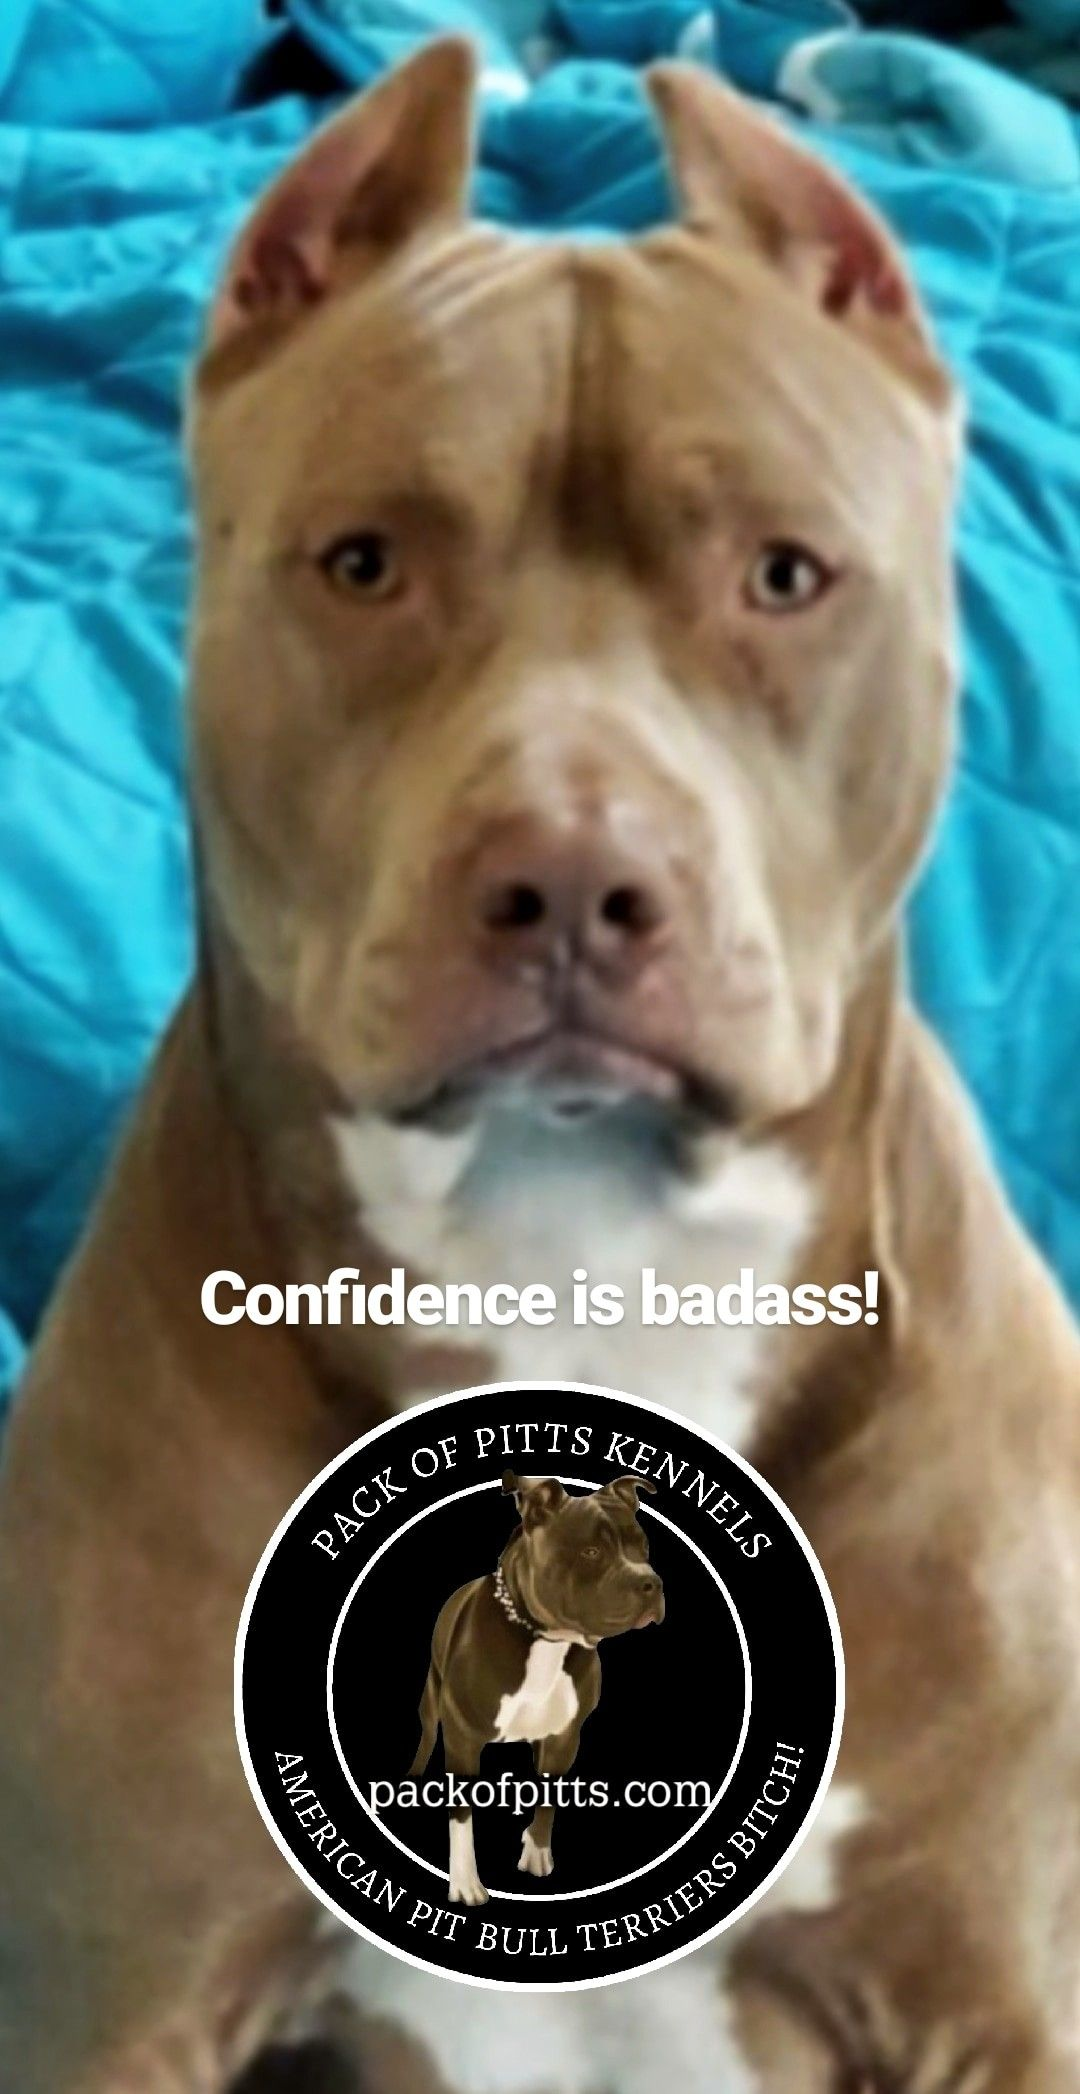 Pack S Cujo Confidence Is Badas Pack Of Pitts Kennels Buffalo